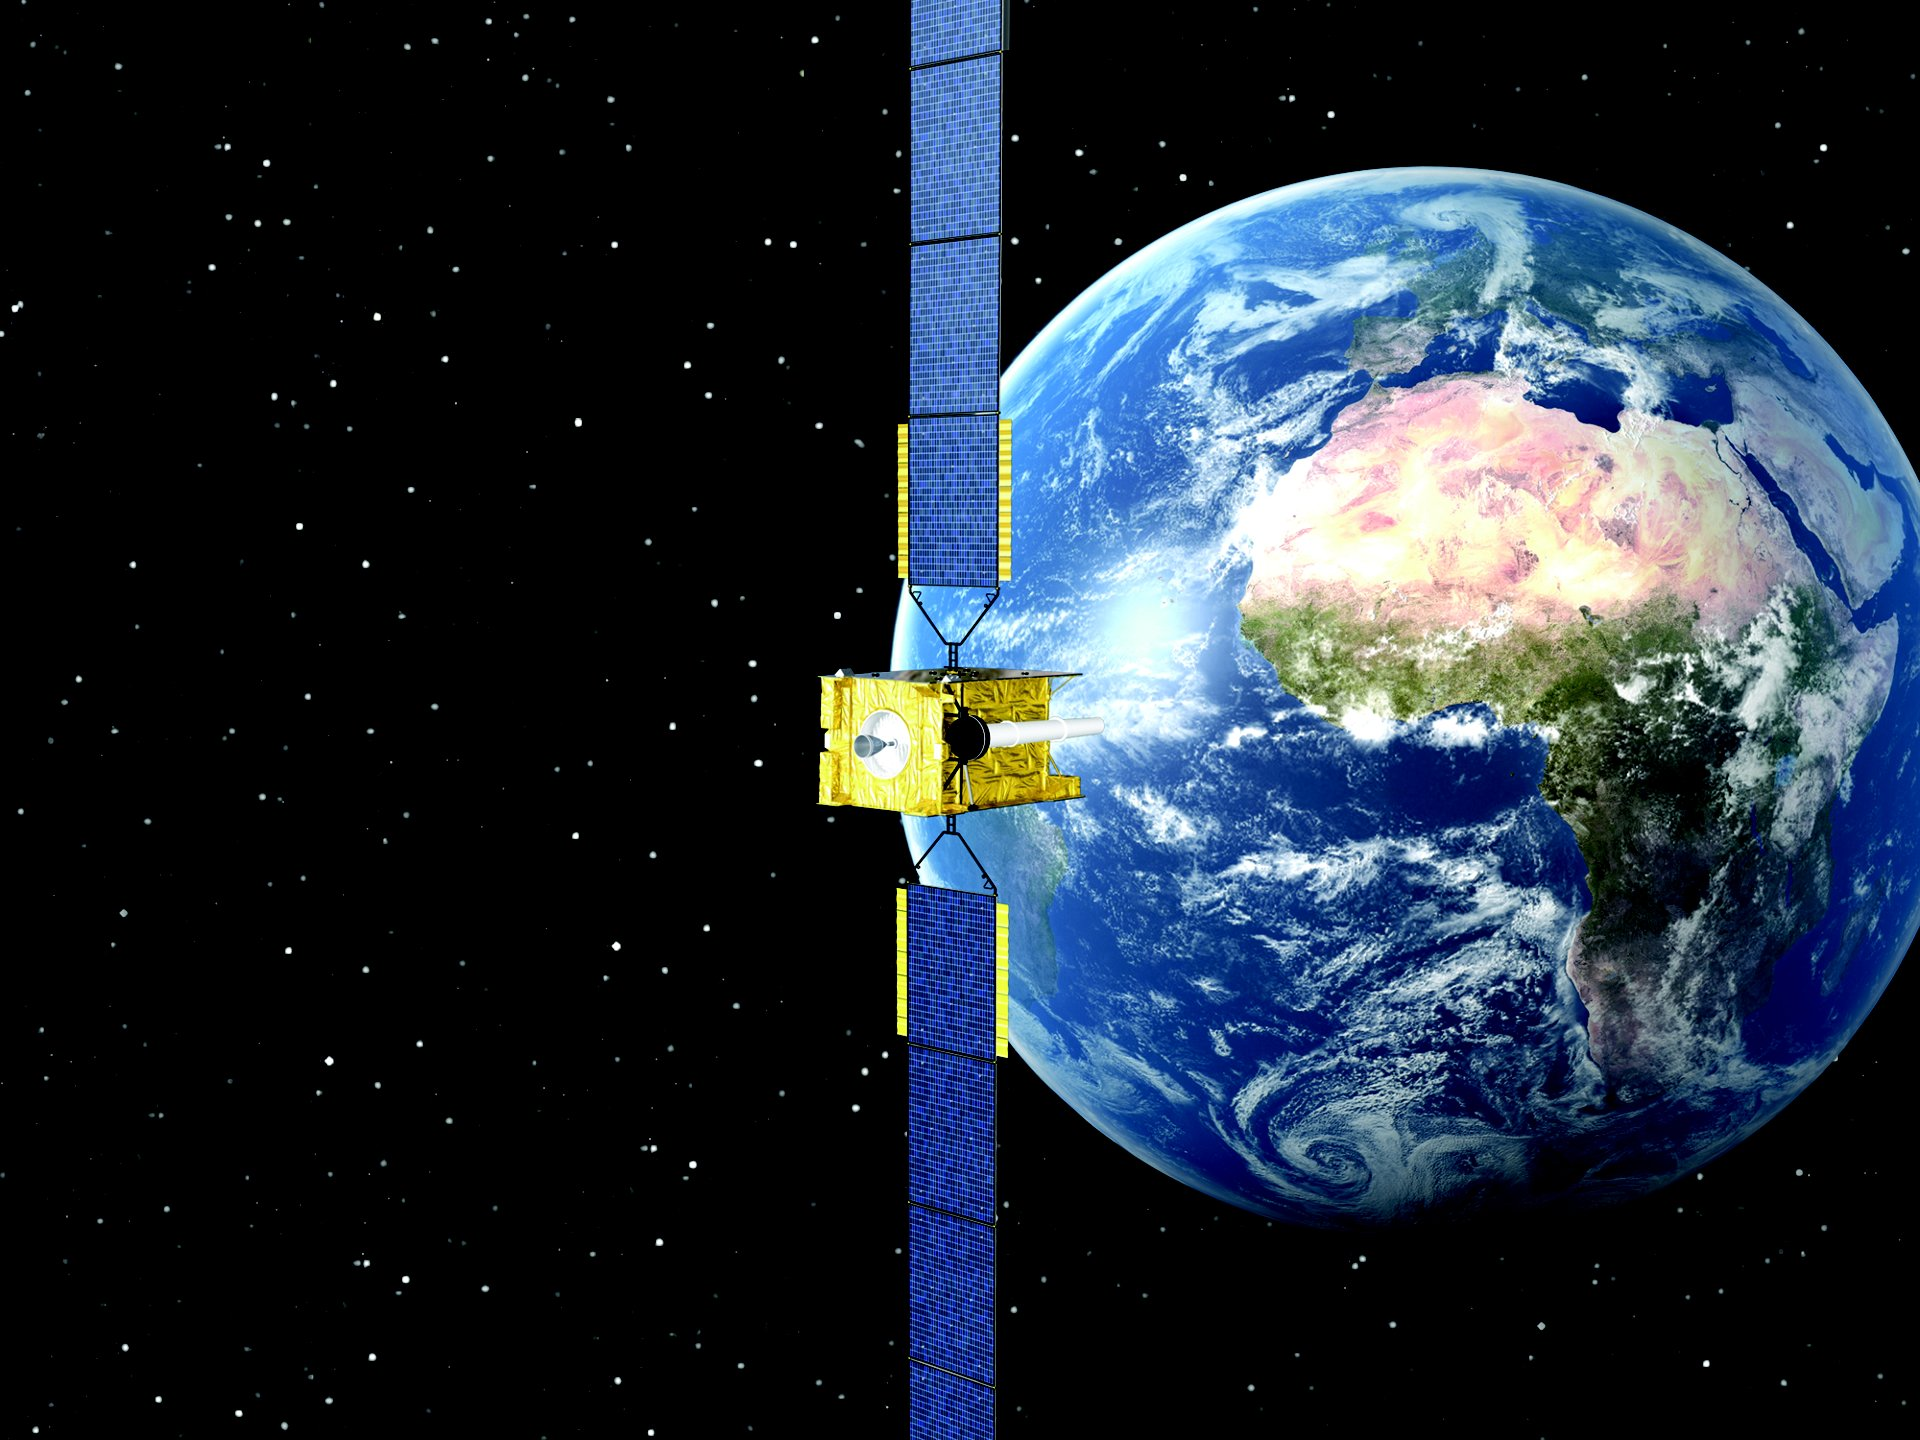 Skynet 5 is the current family of satellites . Since over 16 years, the fleet of 4 Skynet 5 has been provided reliable services to the UK MoD.